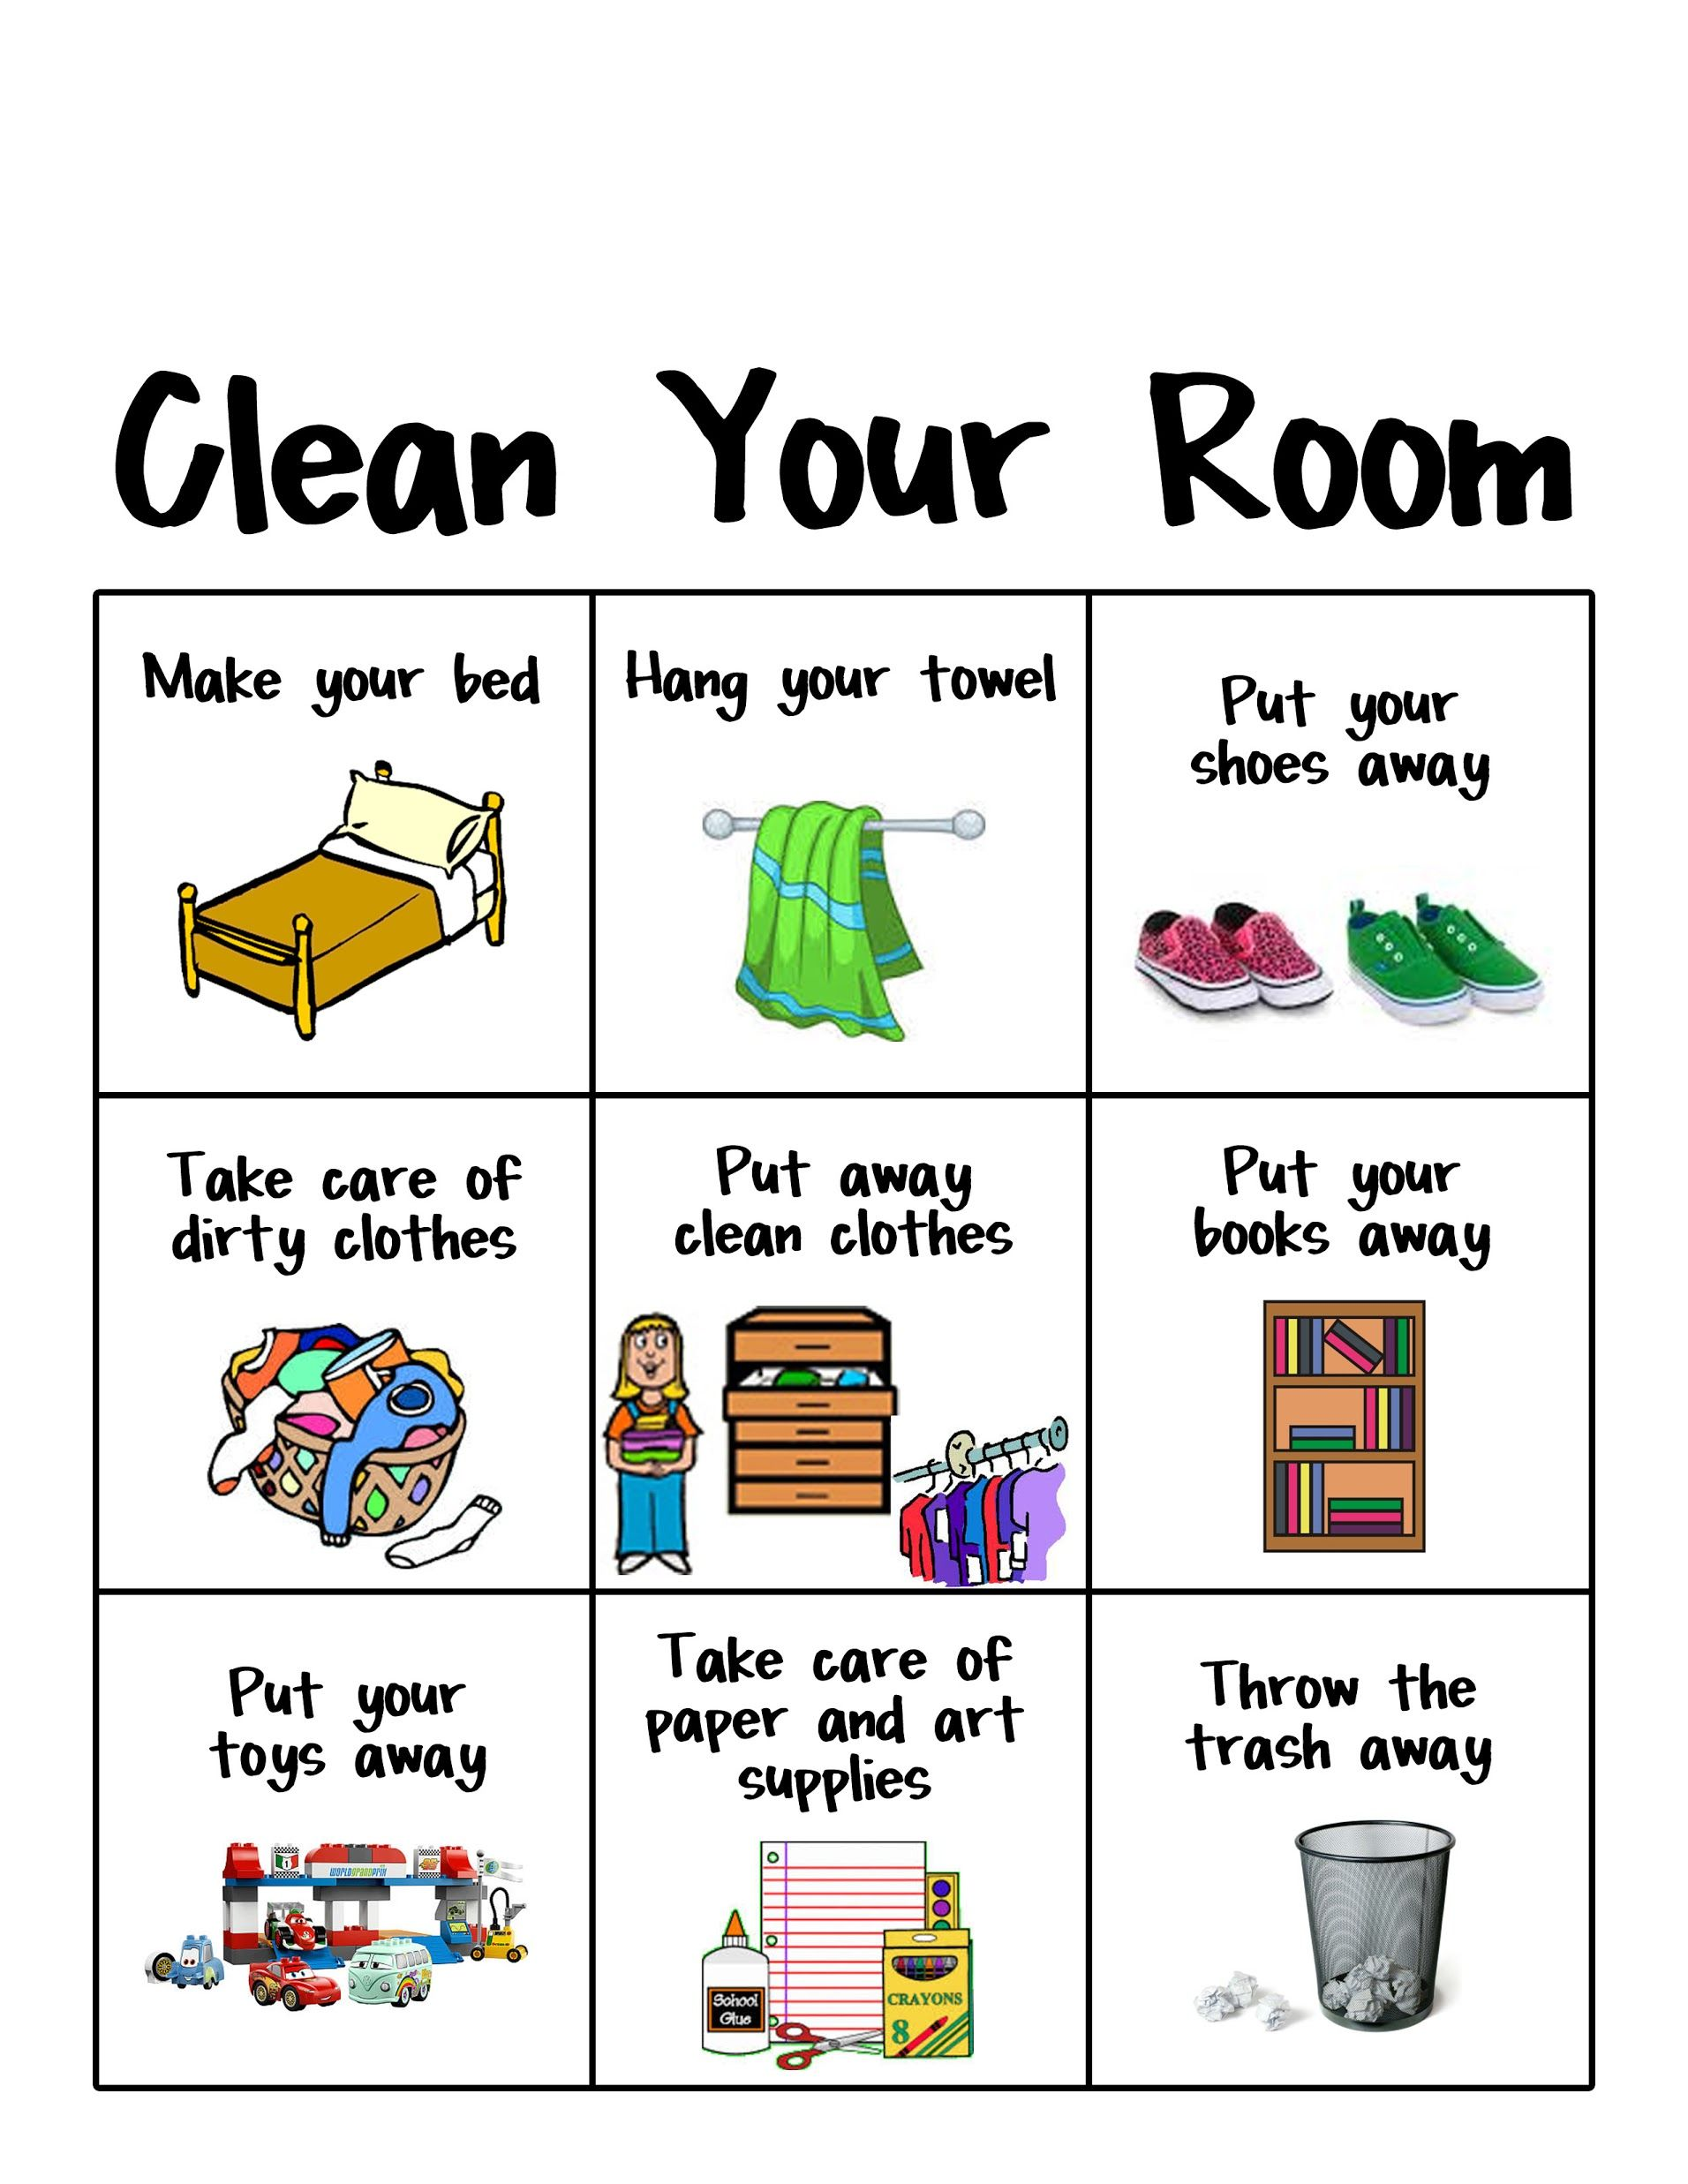 Displaying Clean Your Room Chart